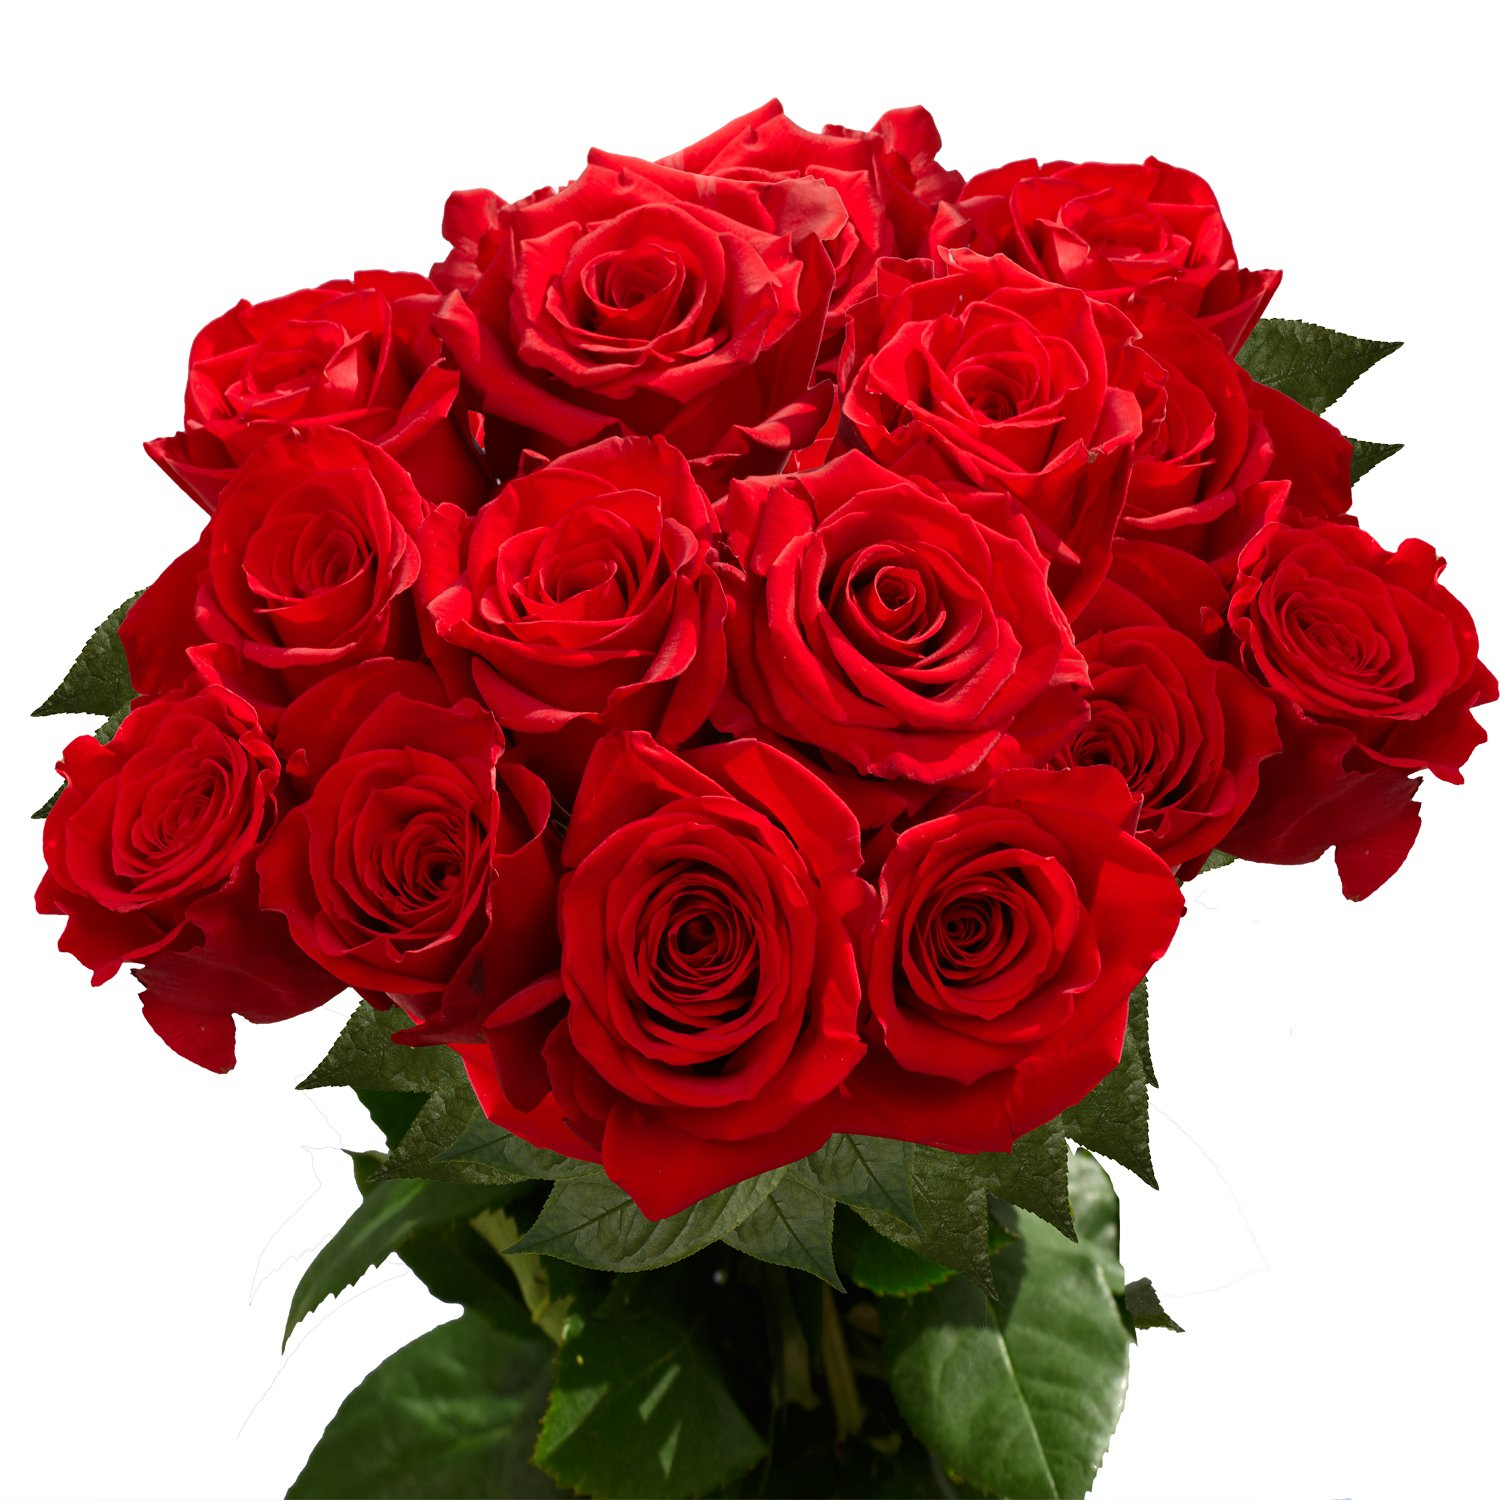 GlobalRose Beautiful Red Roses - Order 100 Fresh Flowers- Express Delivery by GlobalRose (Image #3)